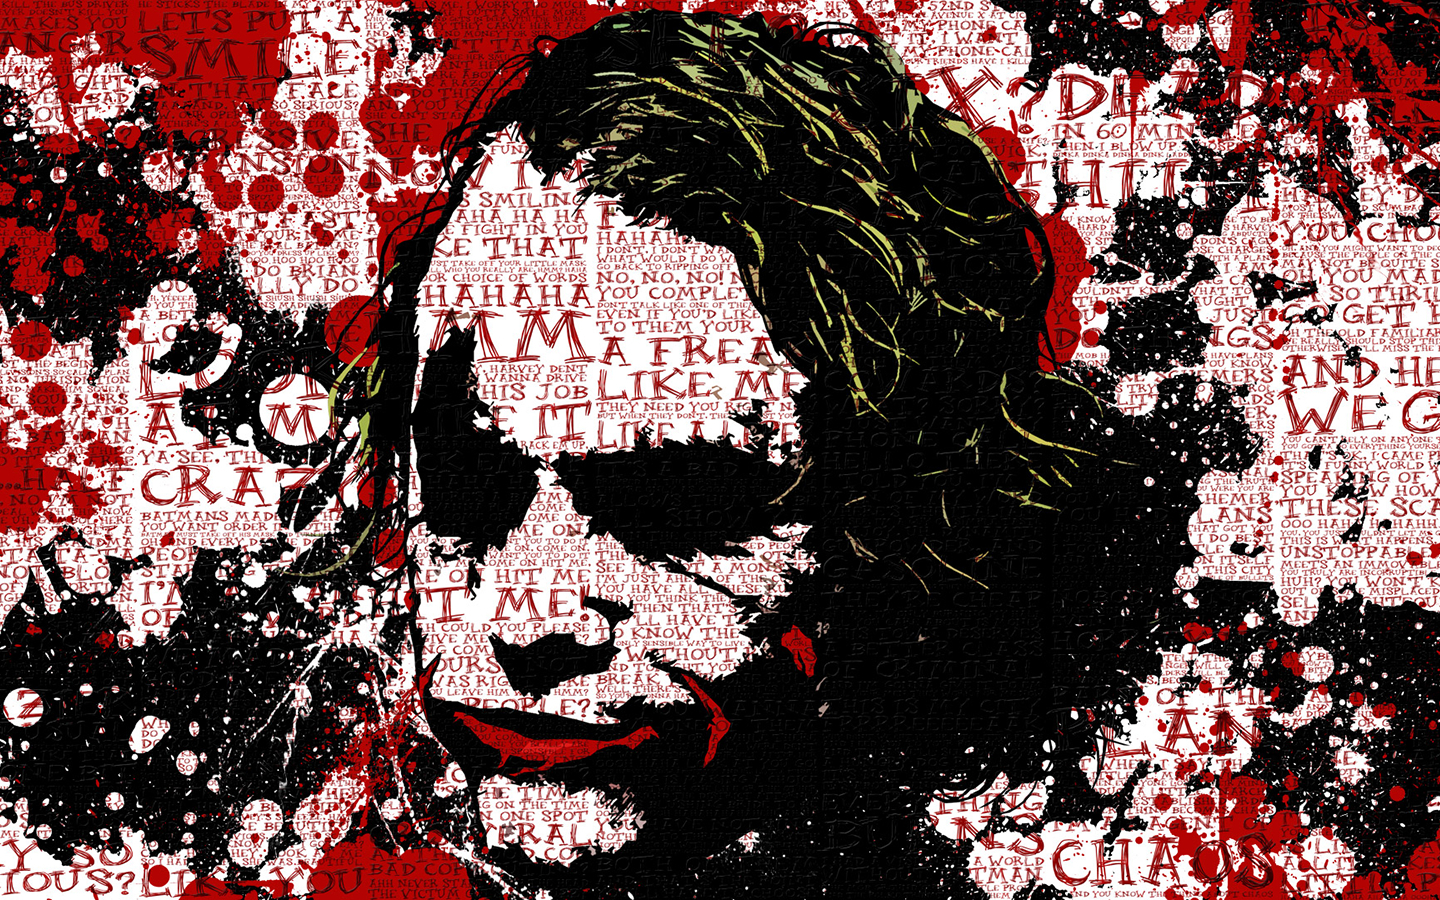 joker Batman dark knight HD Wallpaper